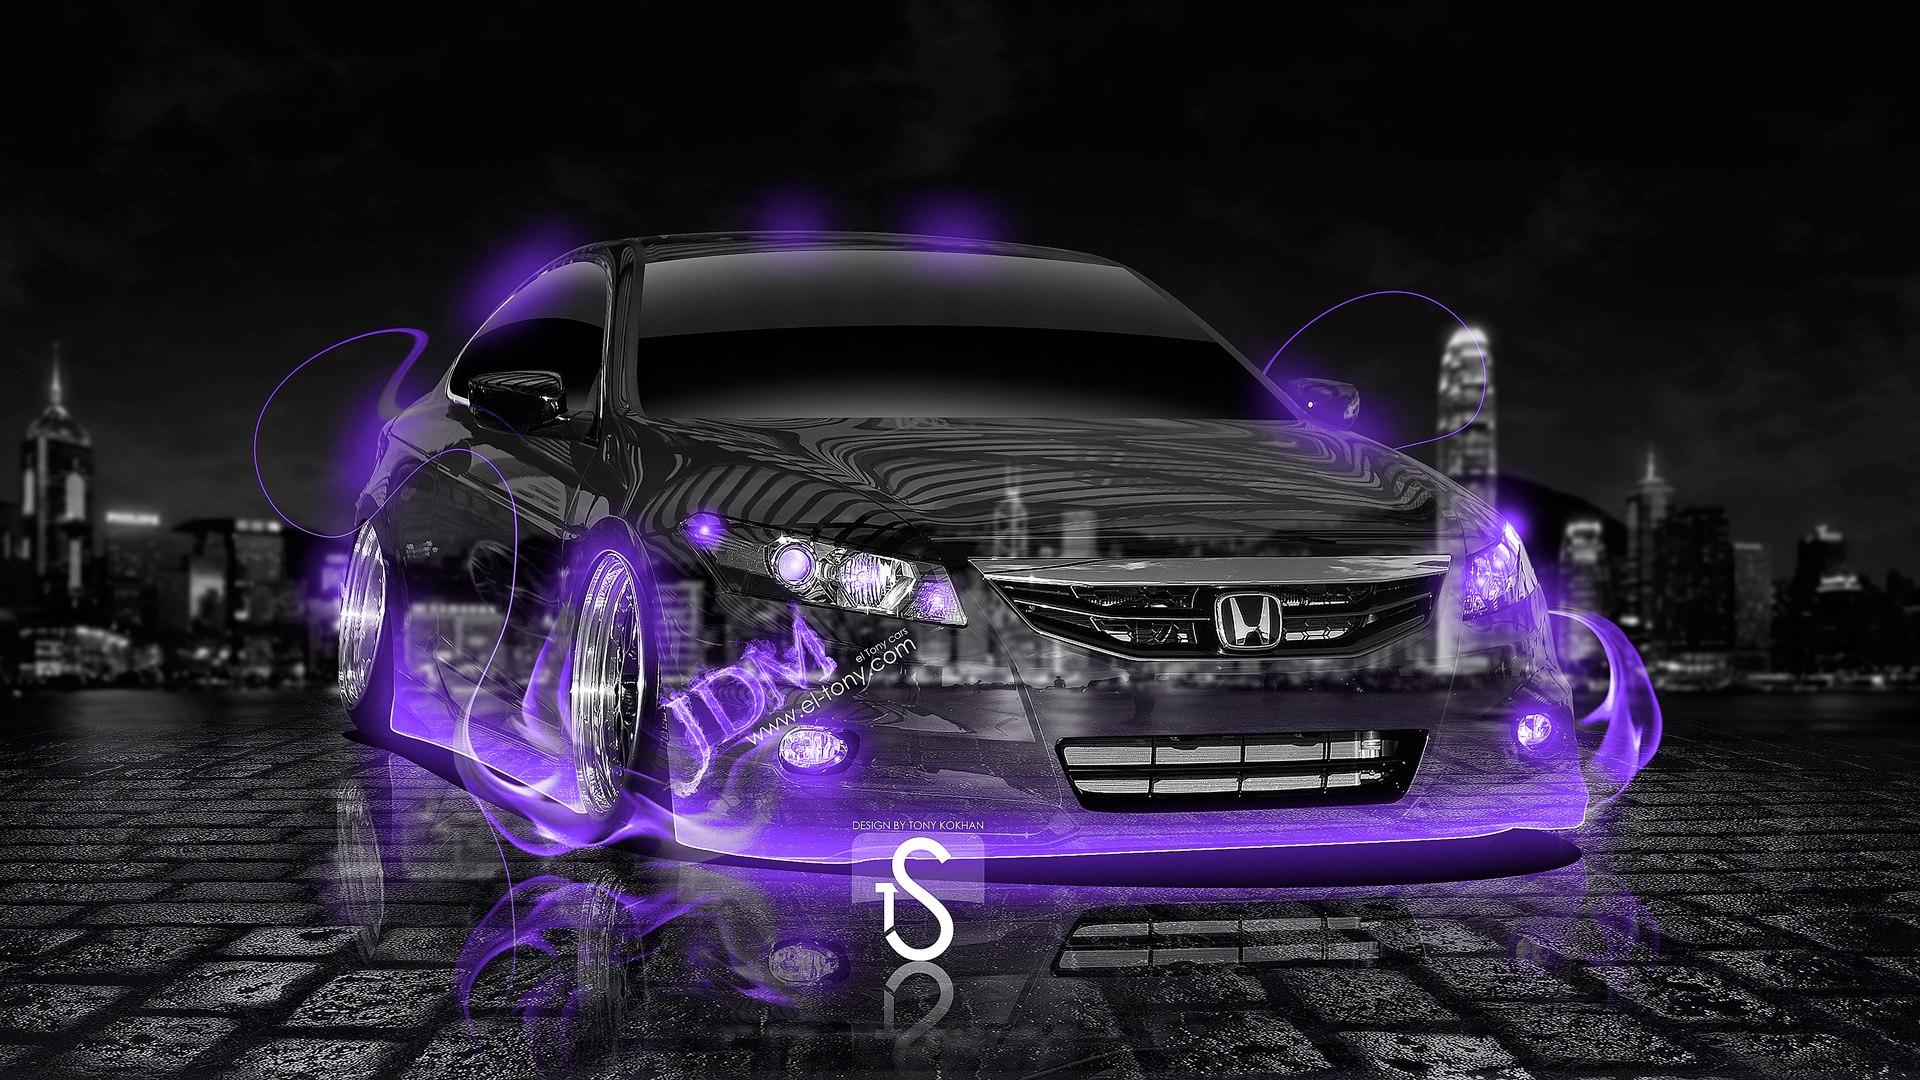 Honda Civic SI Coupe JDM Violet Fire Crystal